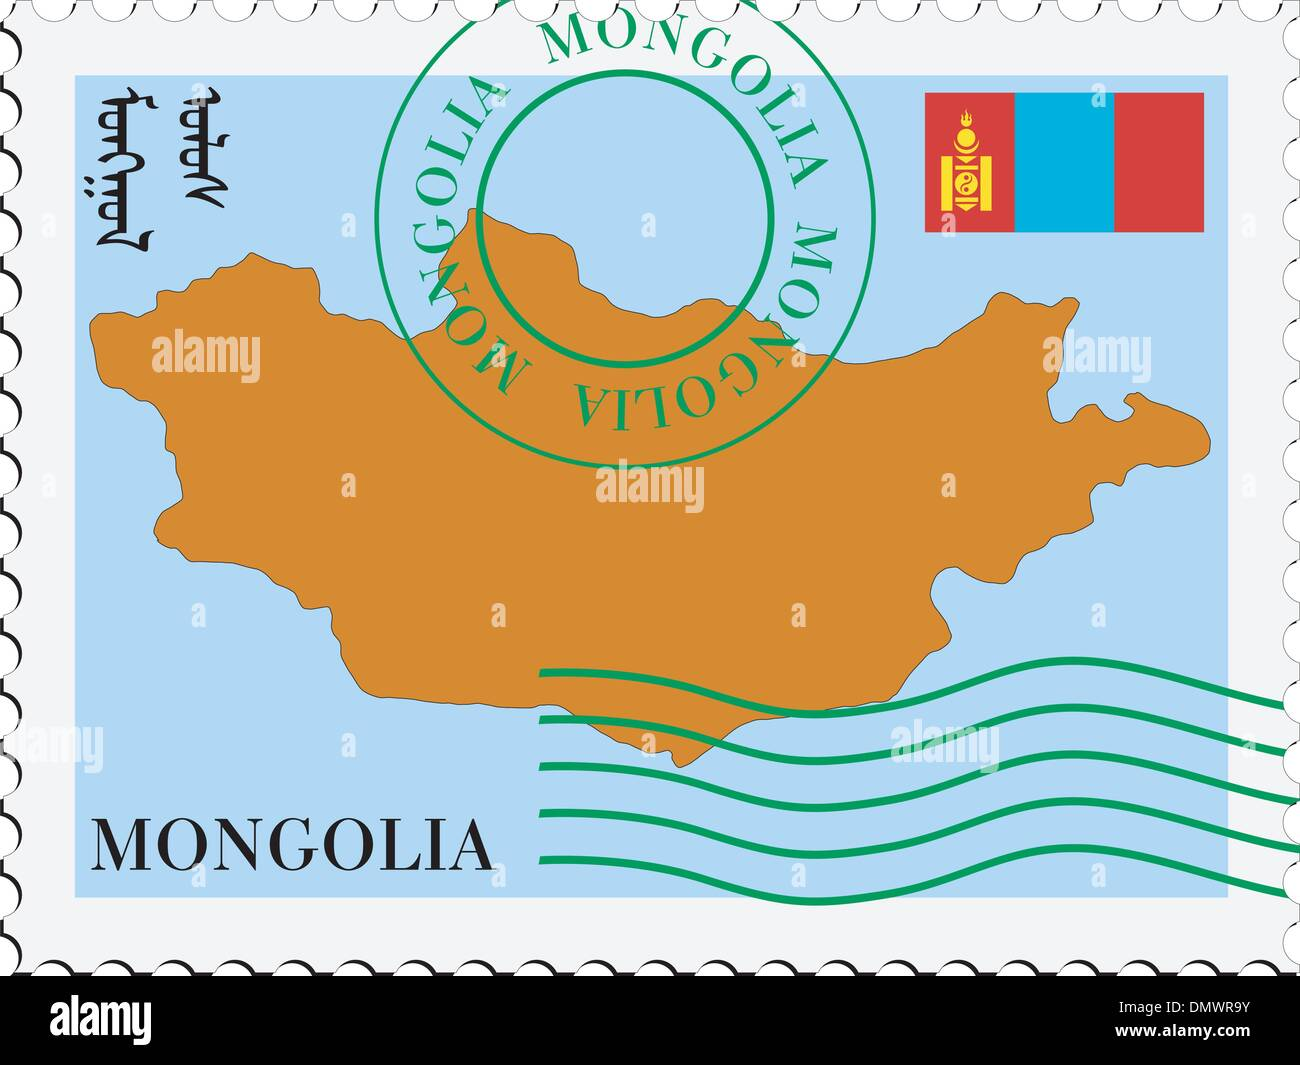 mail to/from Mongolia - Stock Vector